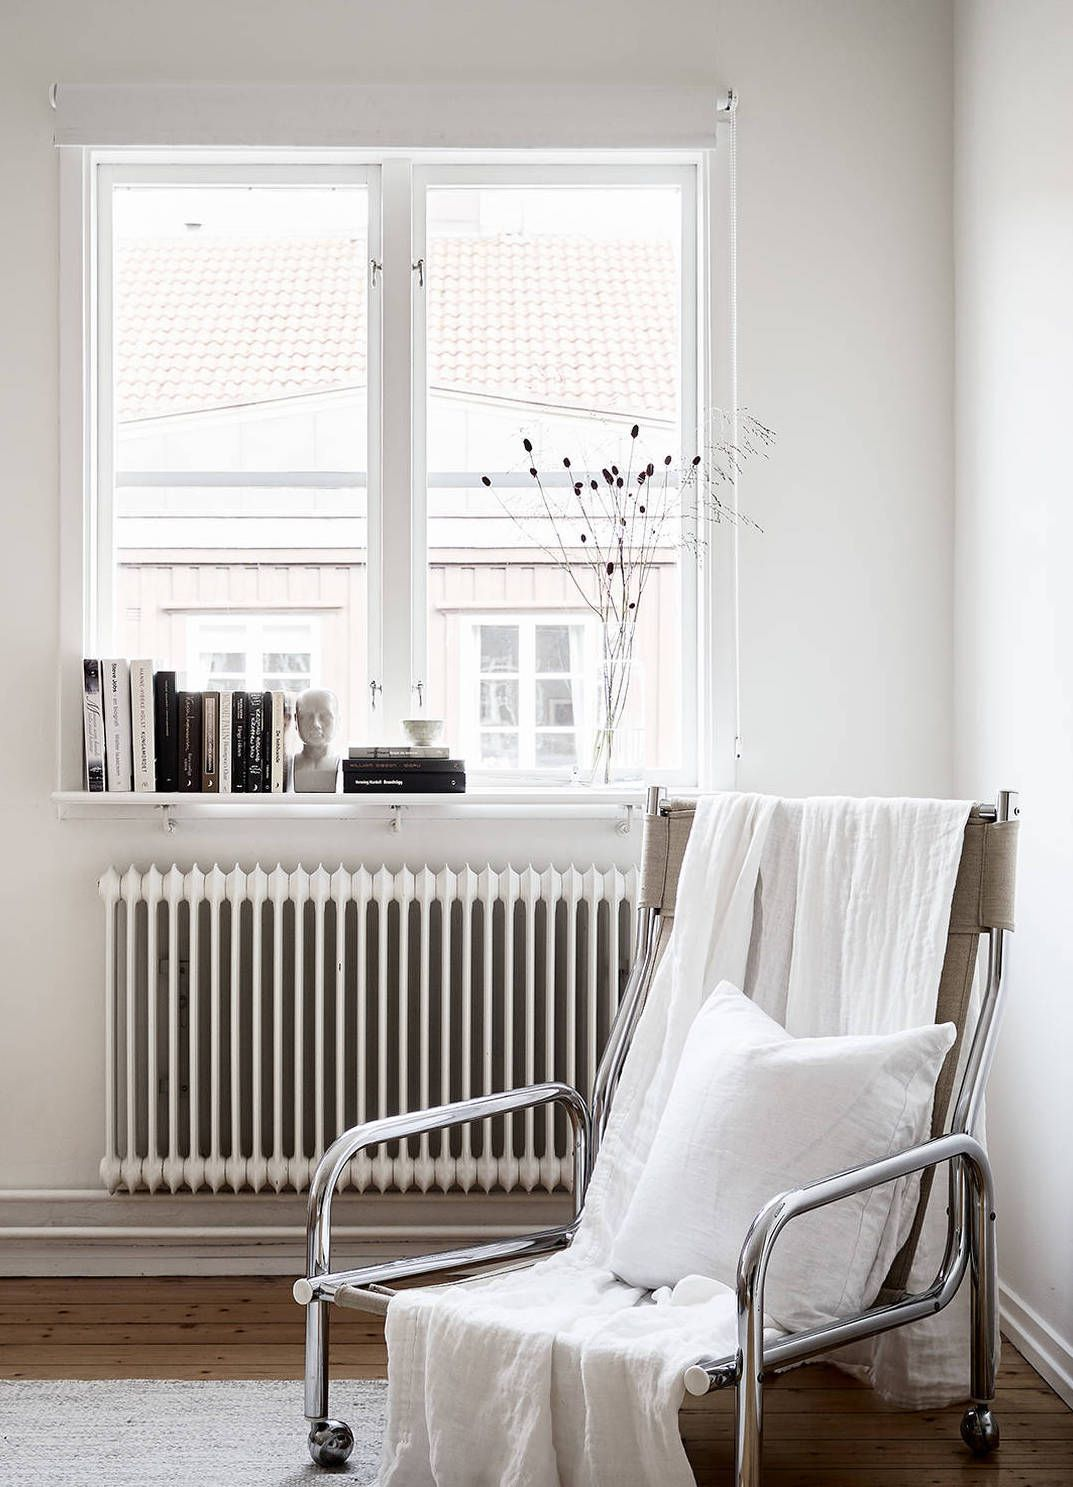 Home in natural colors - via Coco Lapine Design blog | Interior ...